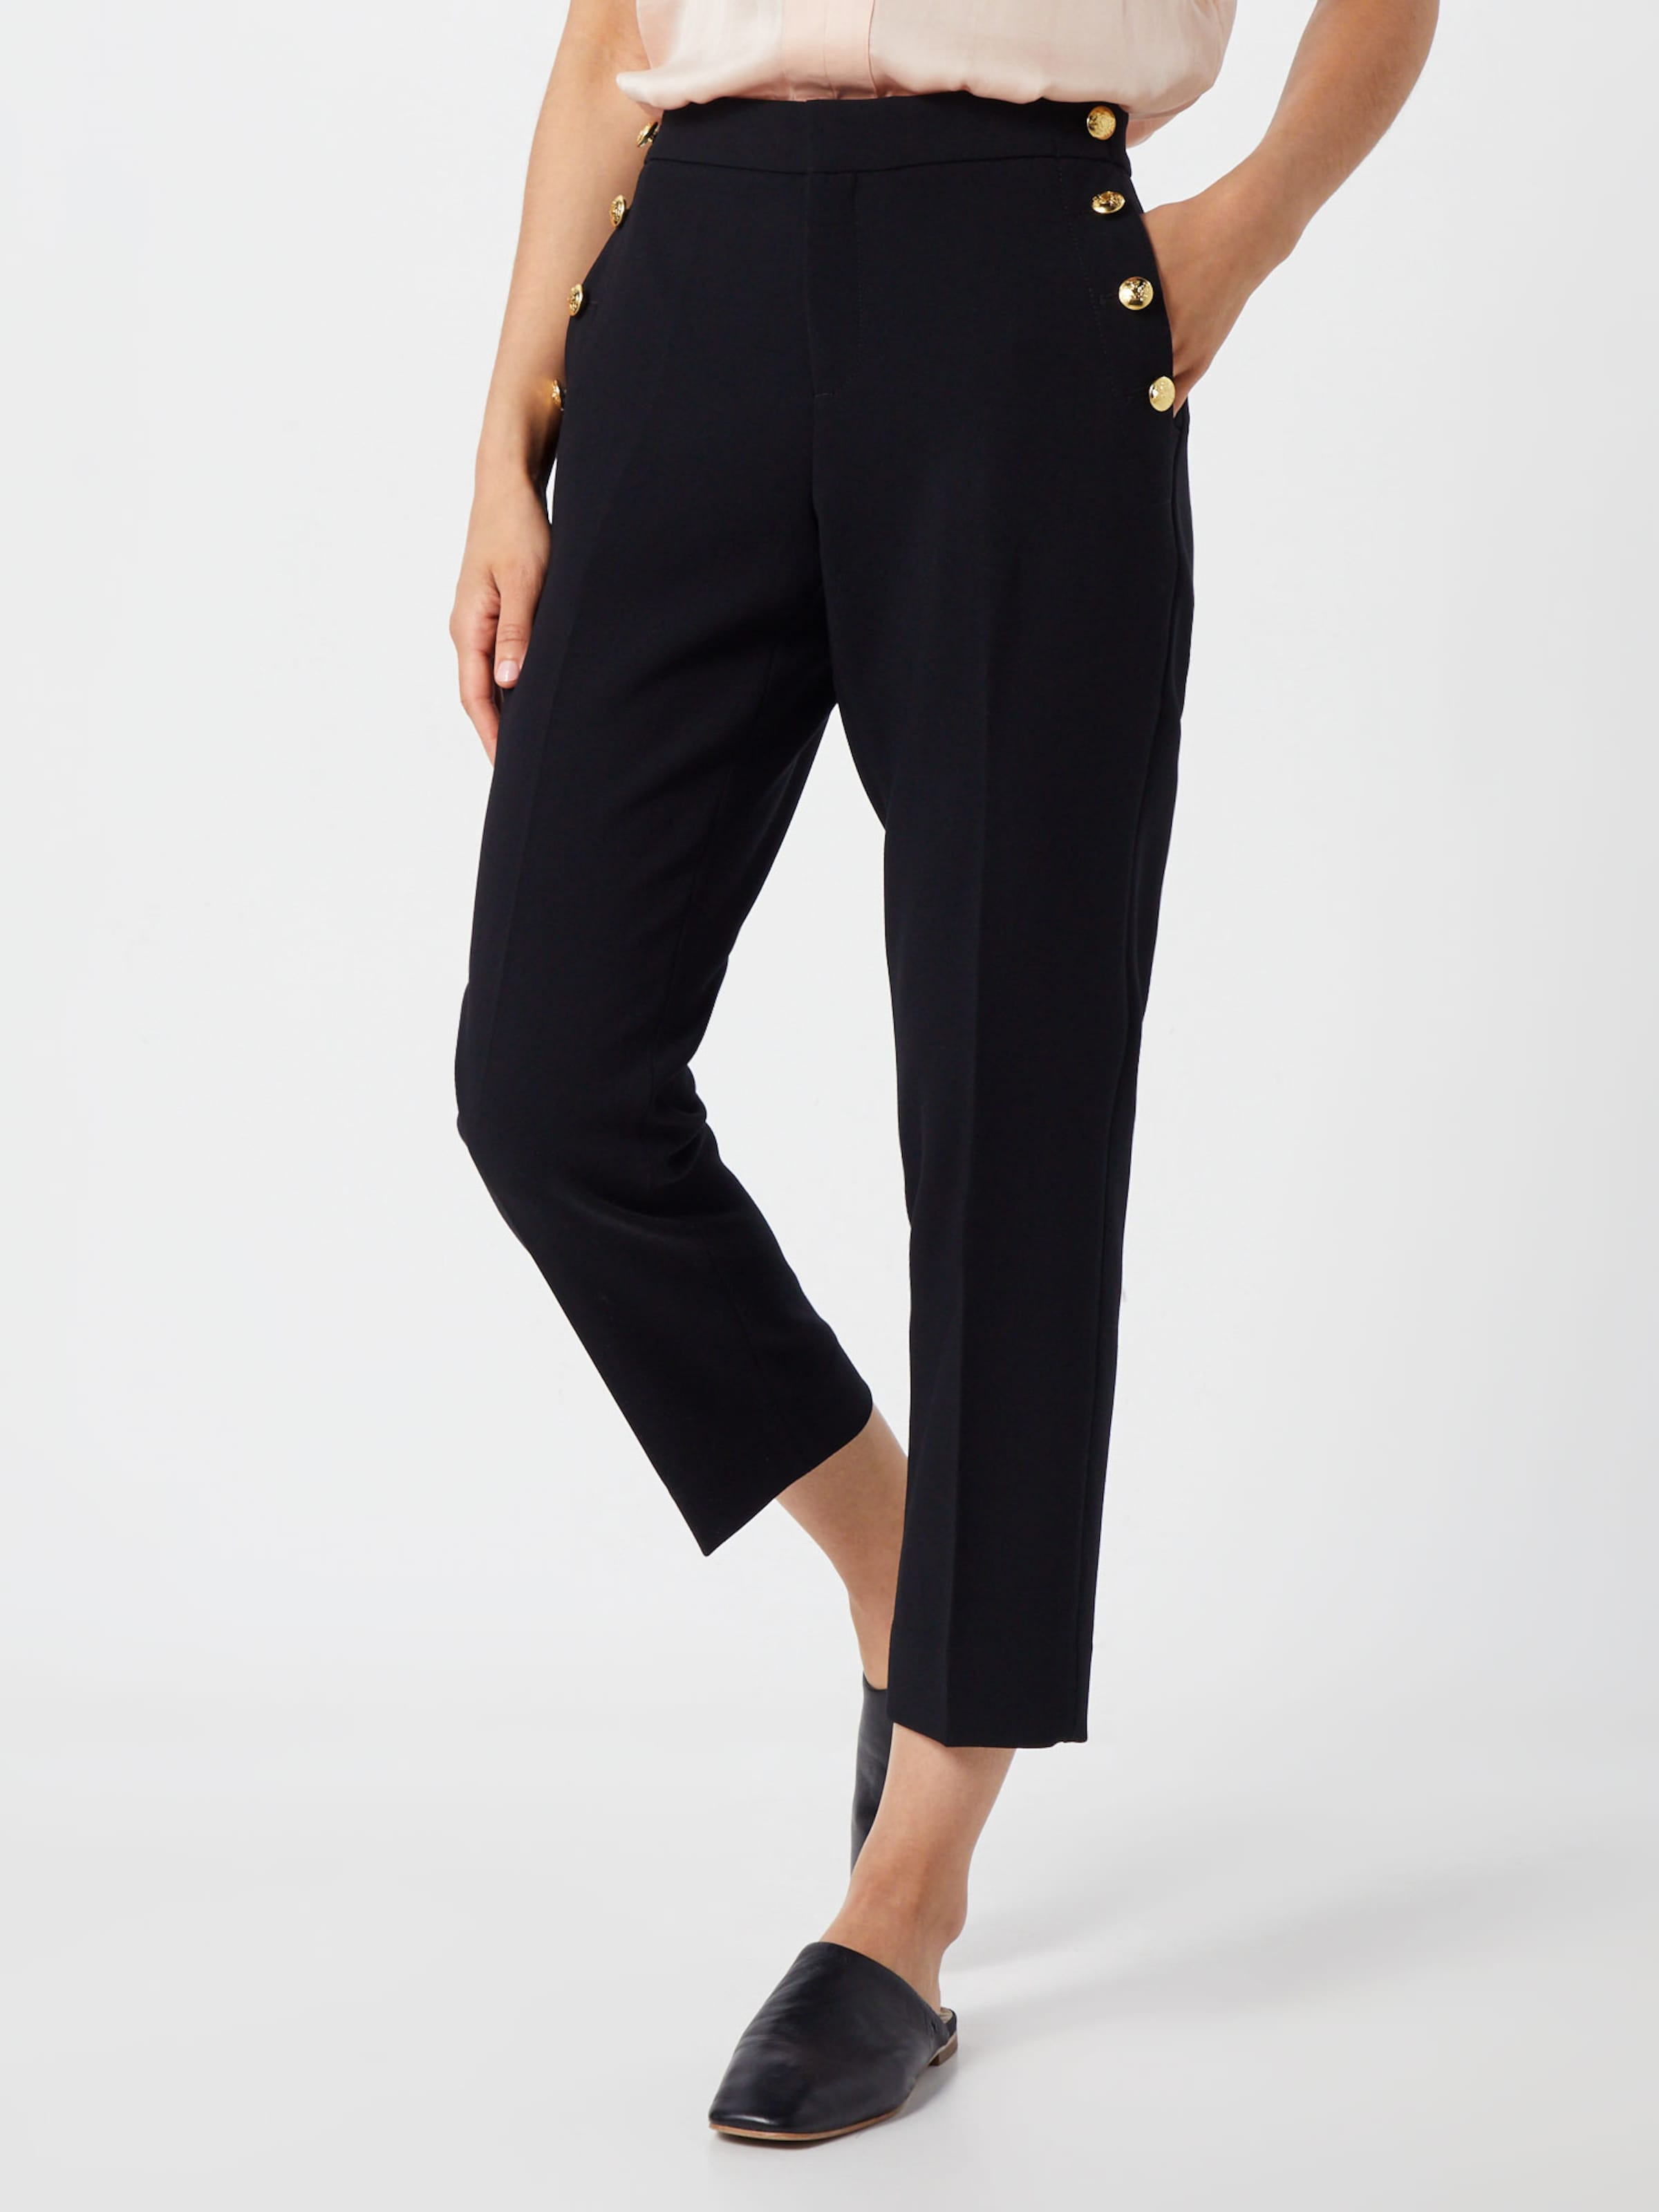 Pant' Noir Republic Pantalon En Crepe Banana Sailor 'avery 435qAjRL